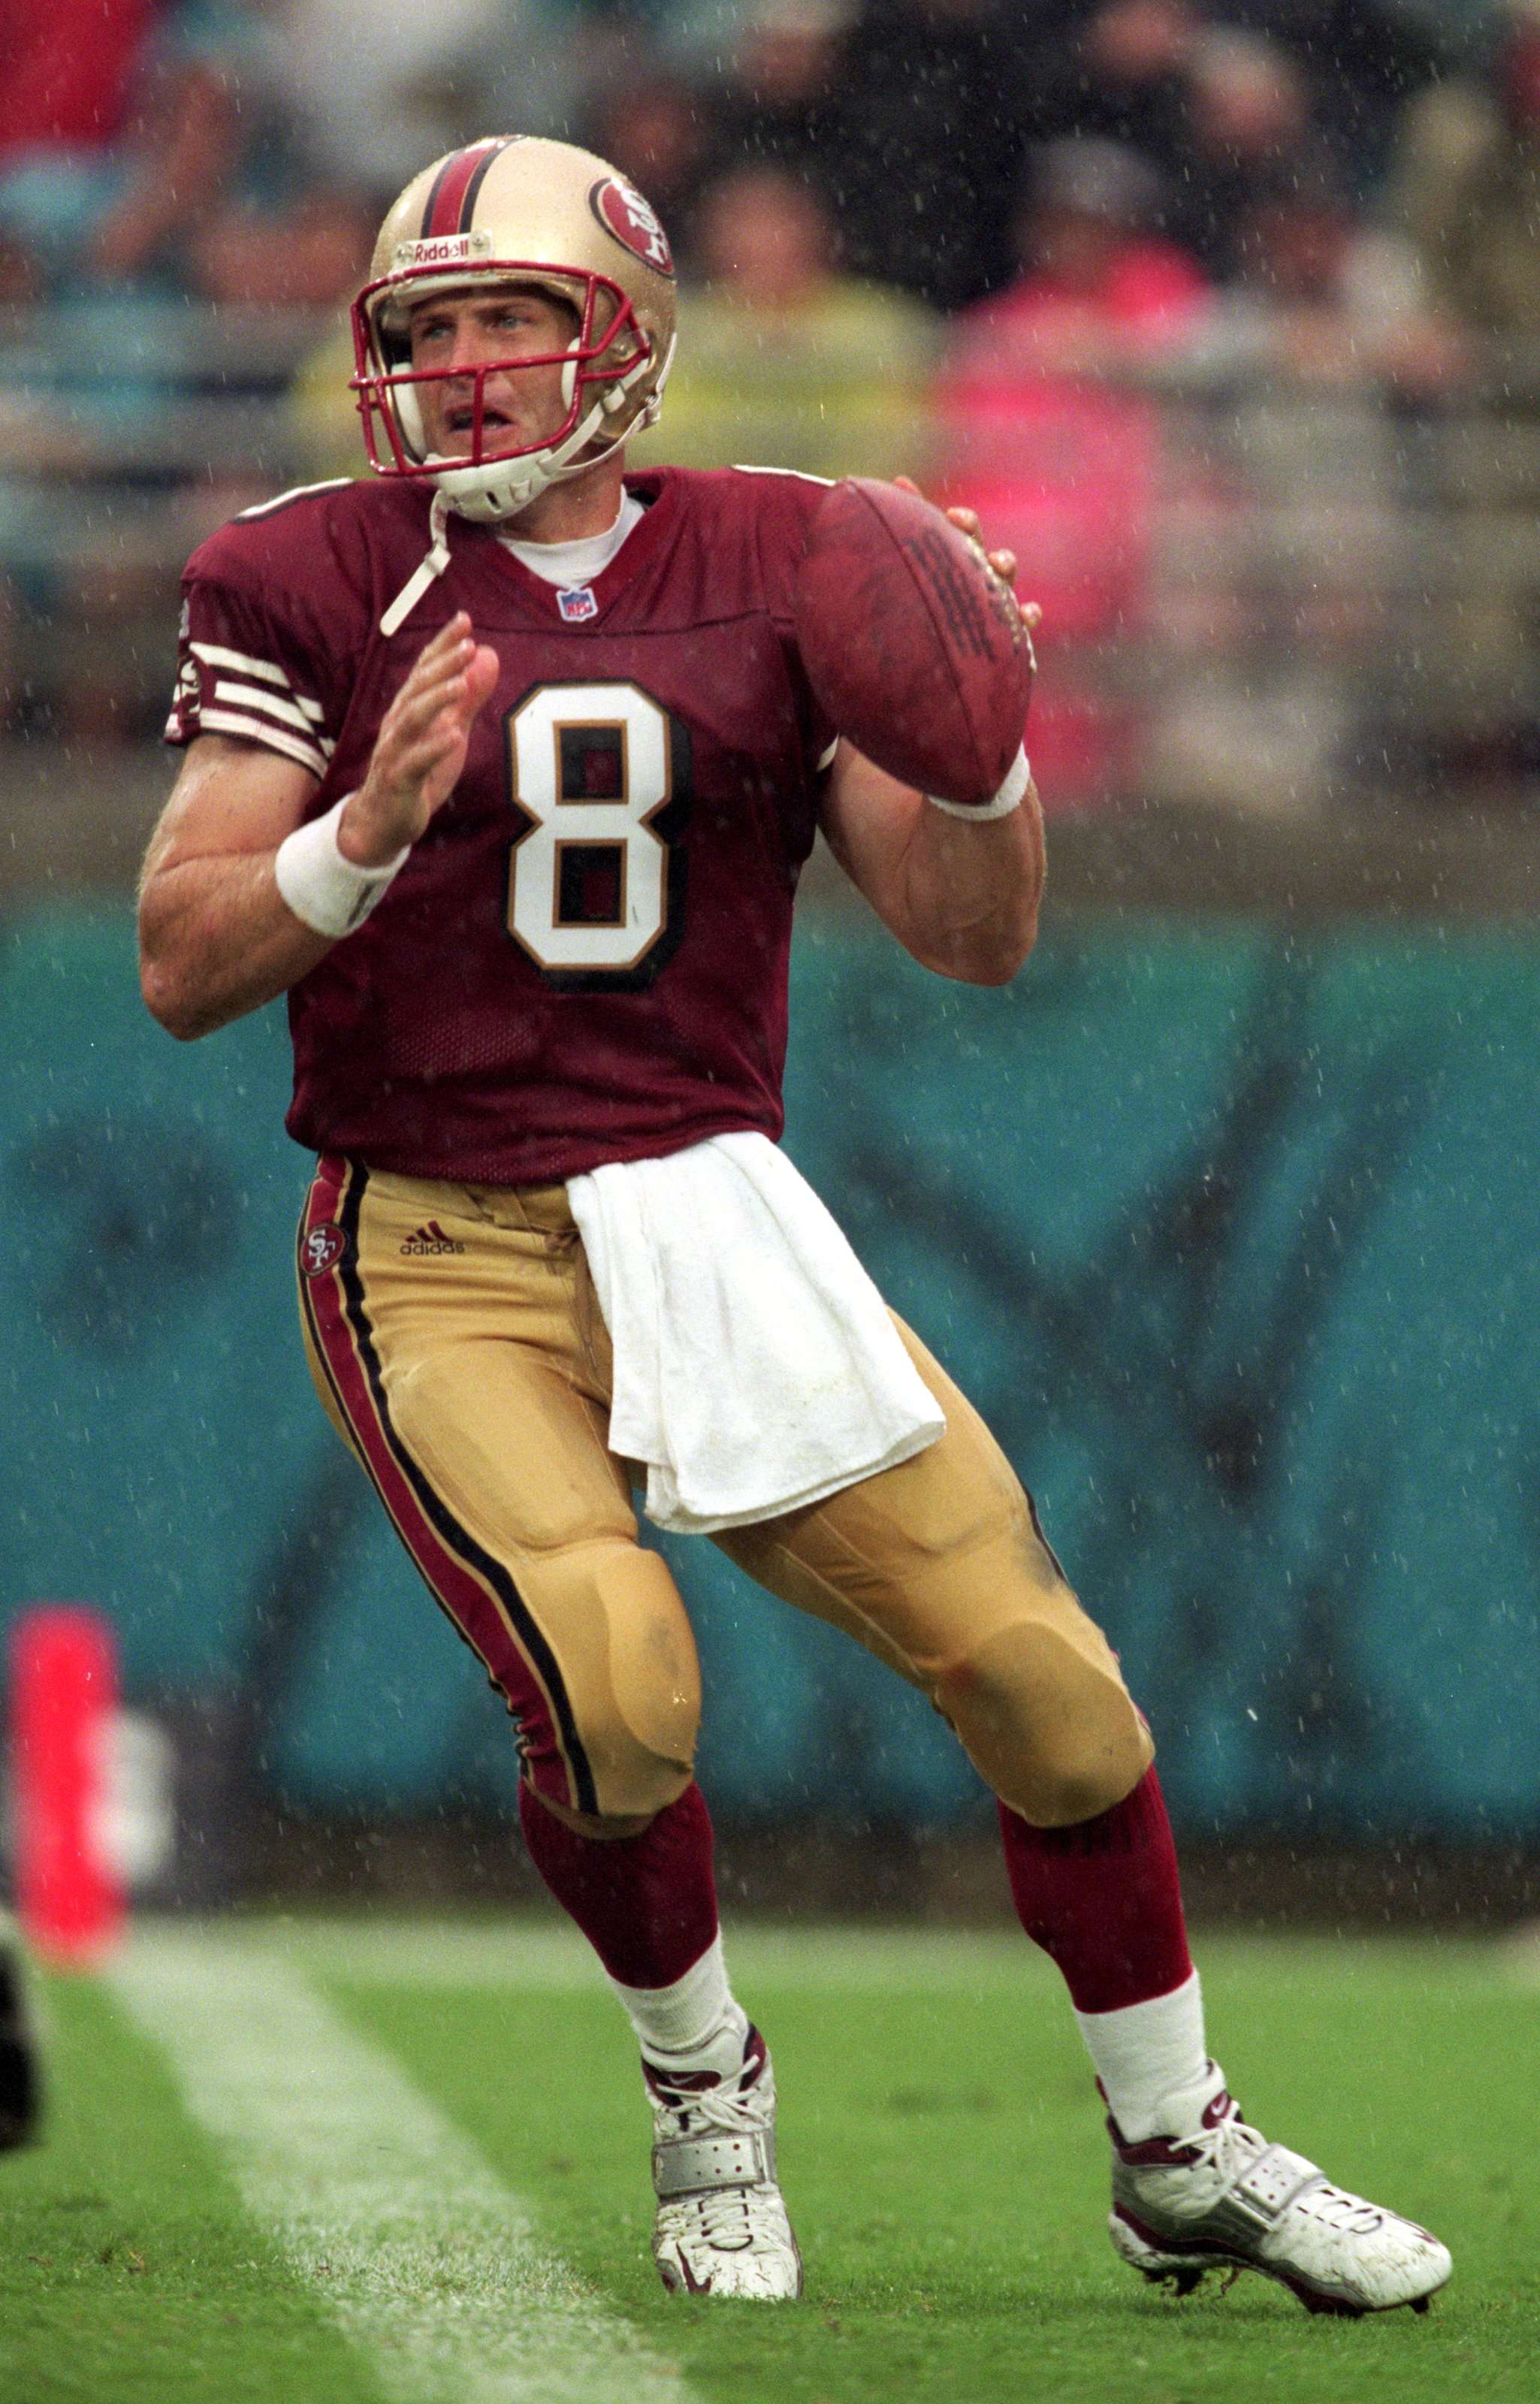 Steve Young Became A Top QB in the NFL